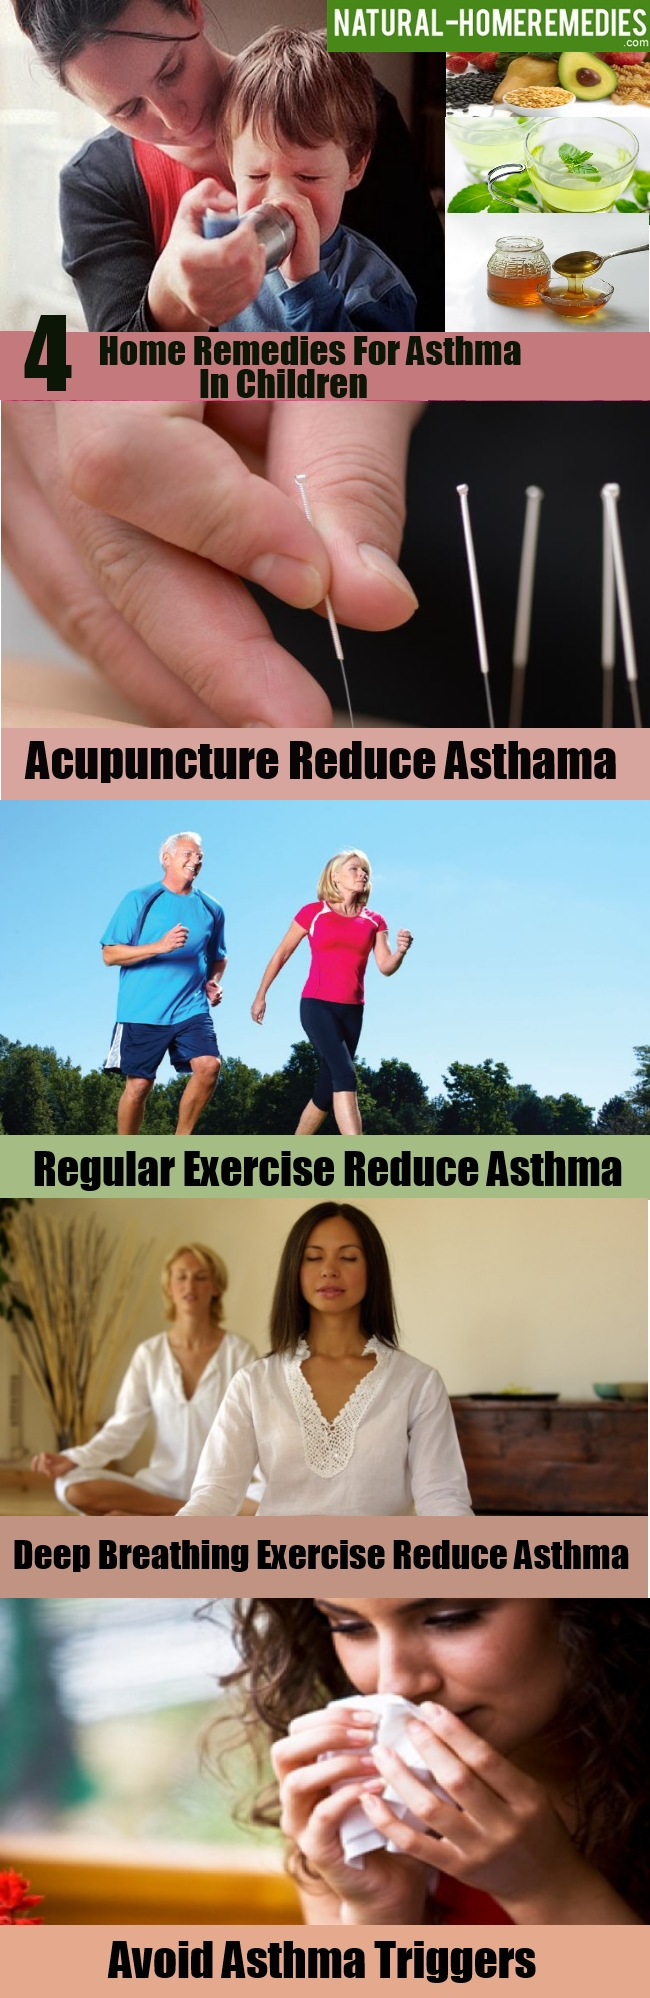 4 Home Remedies For Asthma In Children  Natural Home Remedies  Supplements-1217